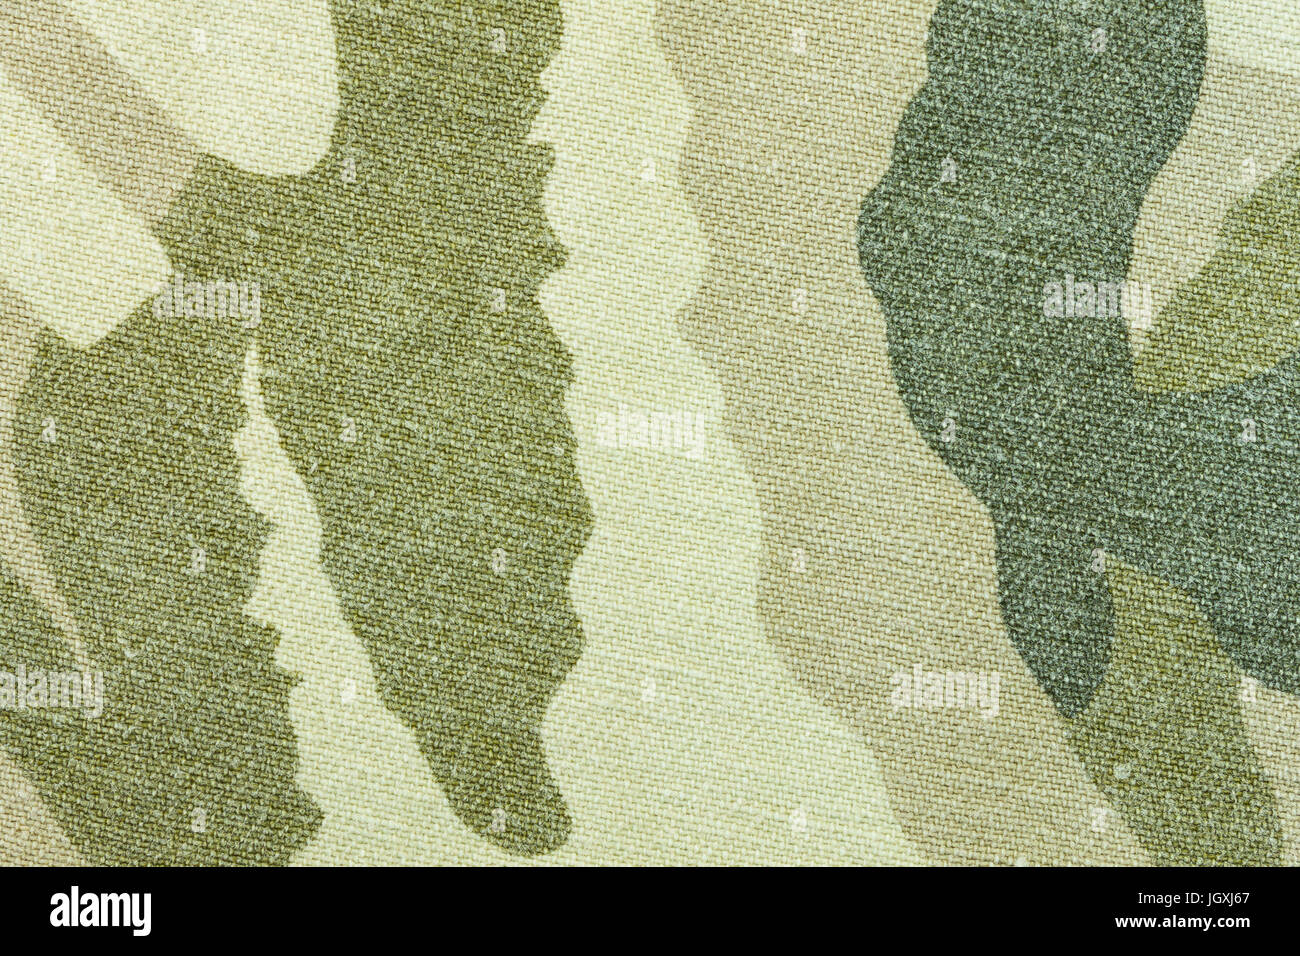 Military Or Army Camouflage Fabric Texture Pattern